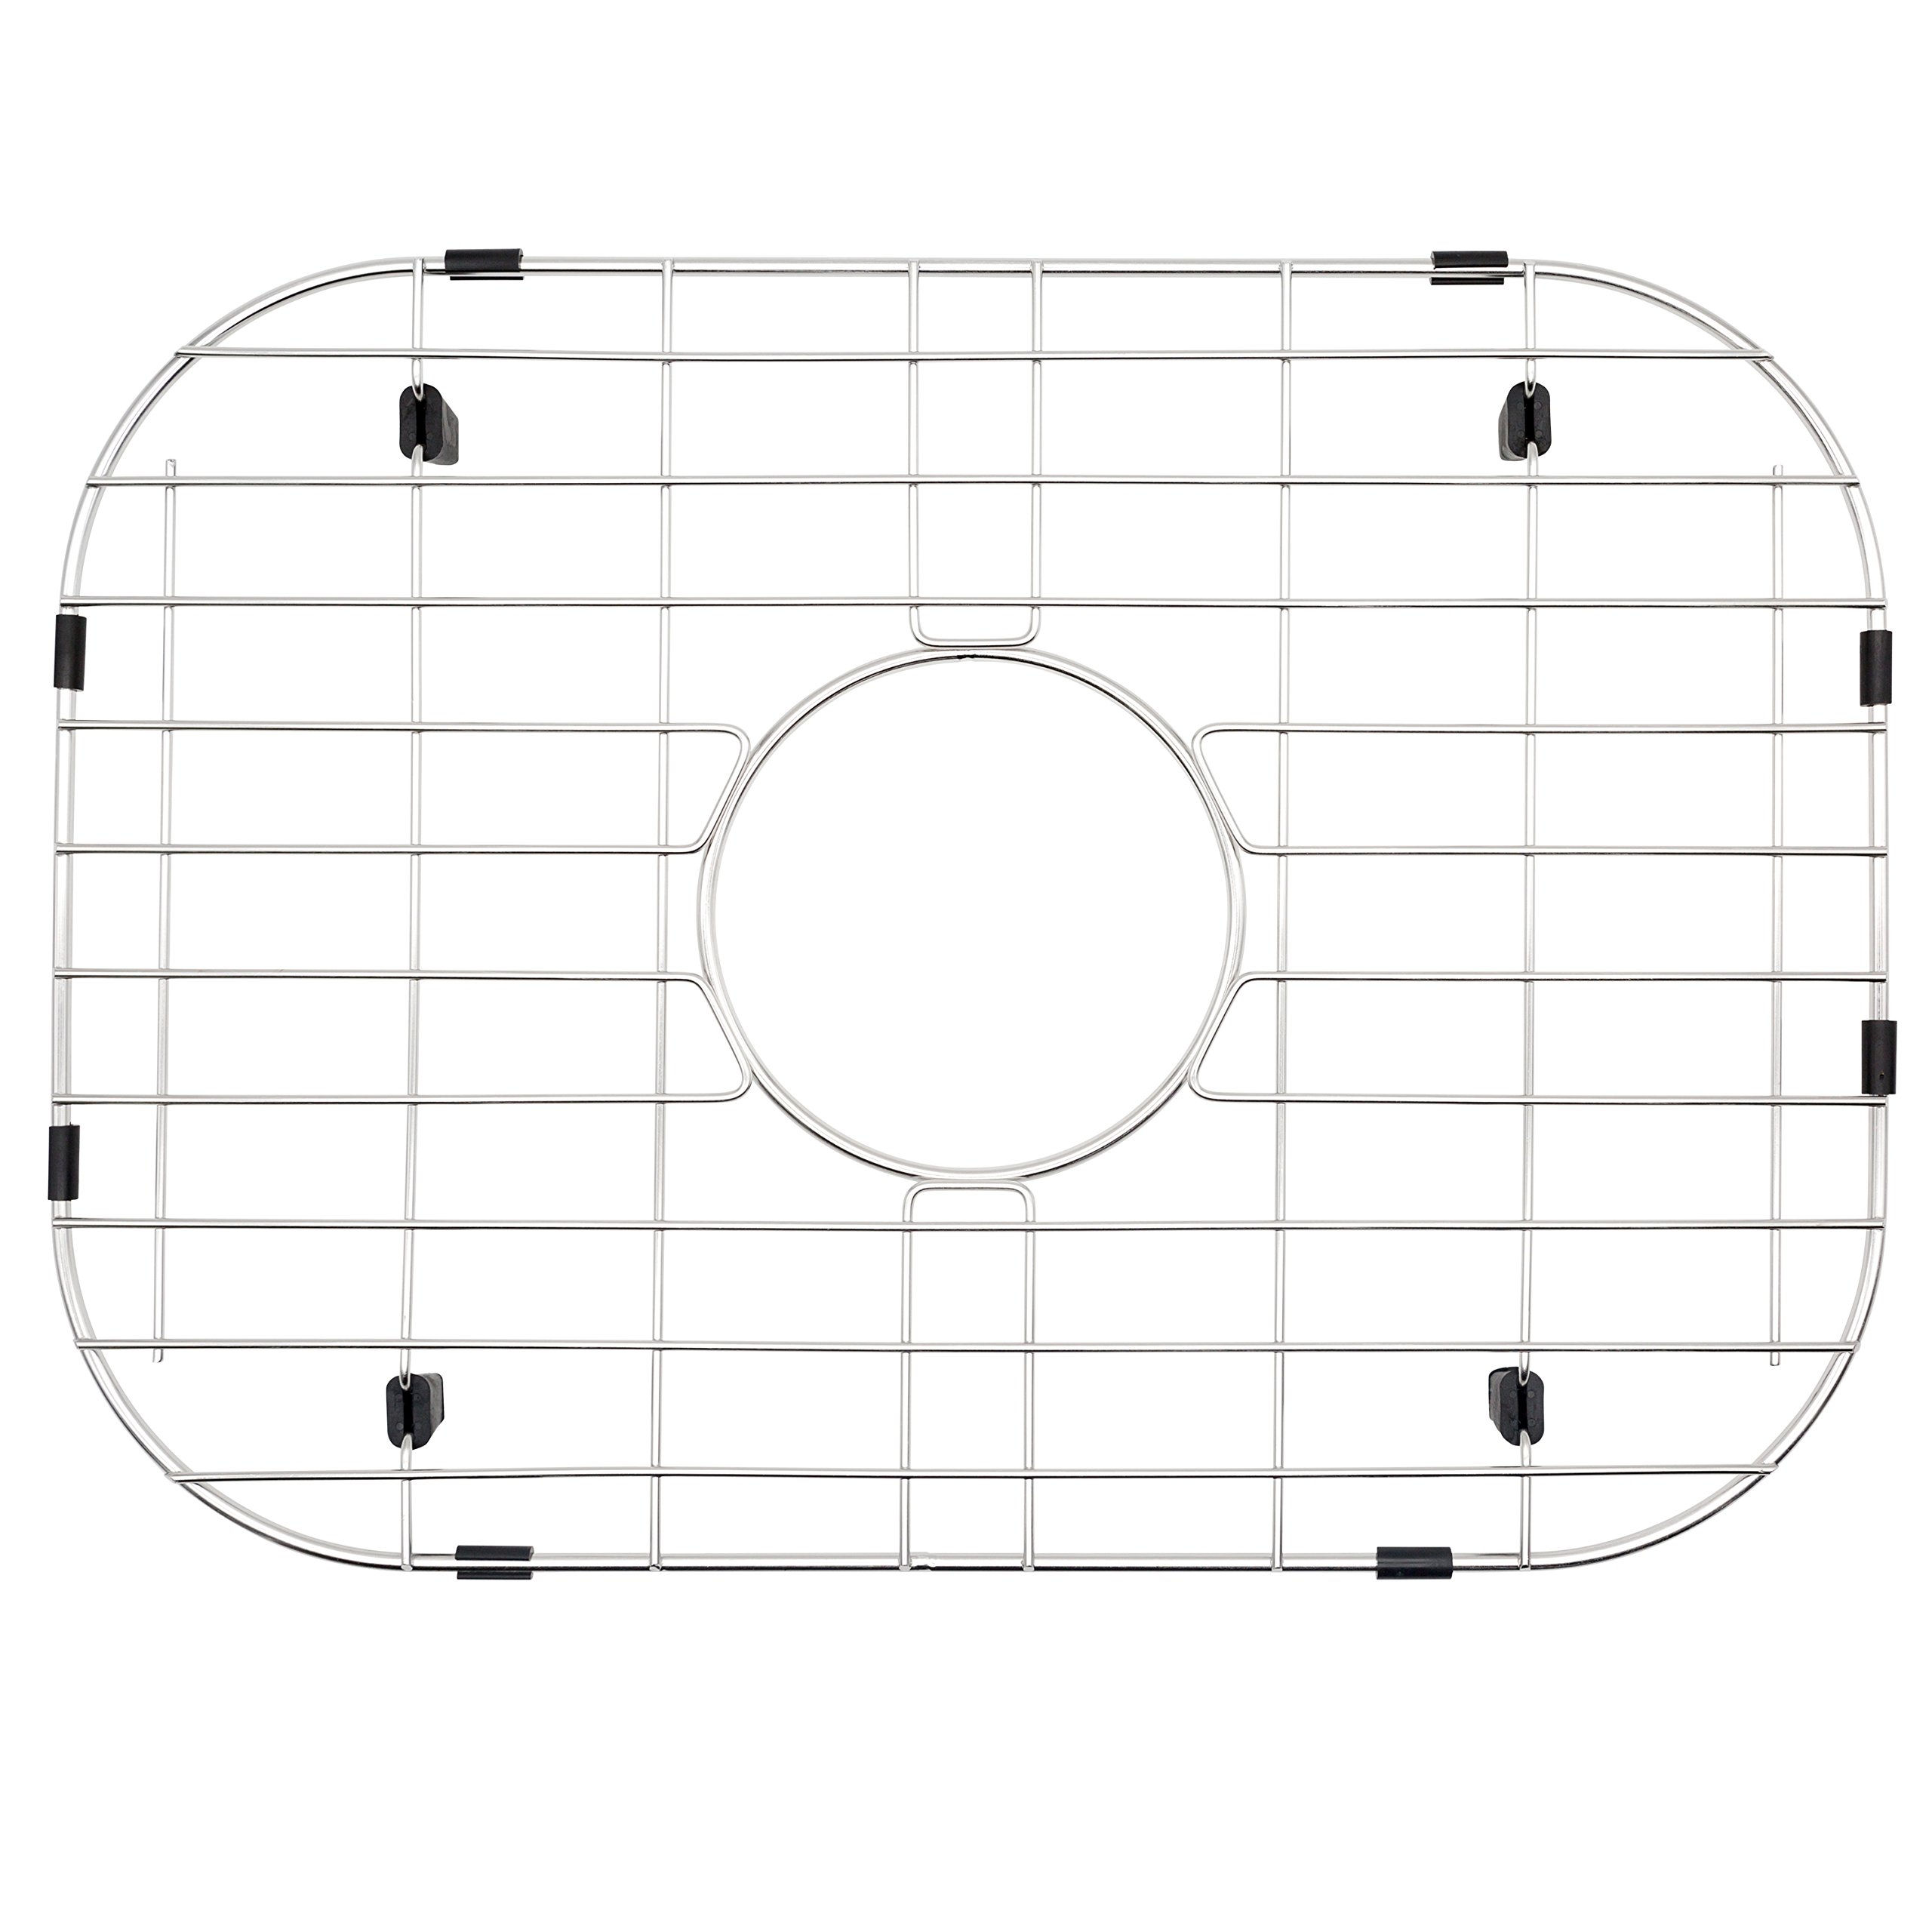 NWC Sink Protector, Metal Grid for Stainless Steel Kitchen Sinks | 11 in X 15 in | Best for Protecting Your Sink